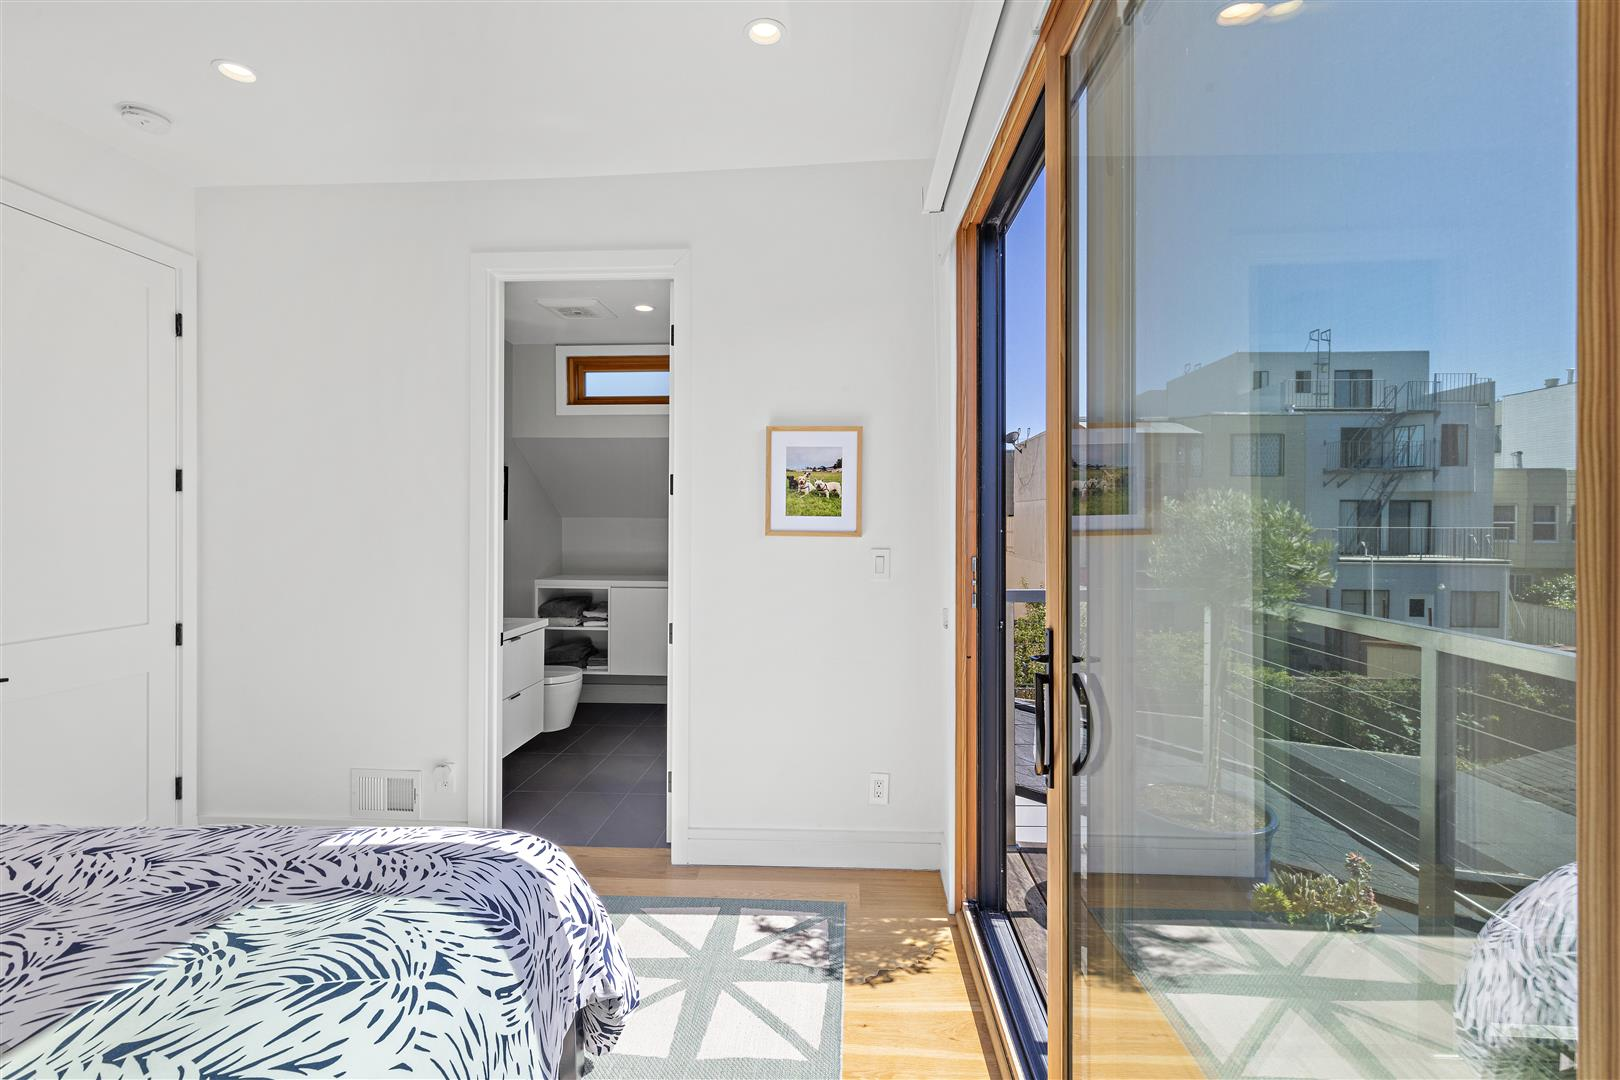 21-MLS-375-30th-Ave-San-Francisco47.jpg #22